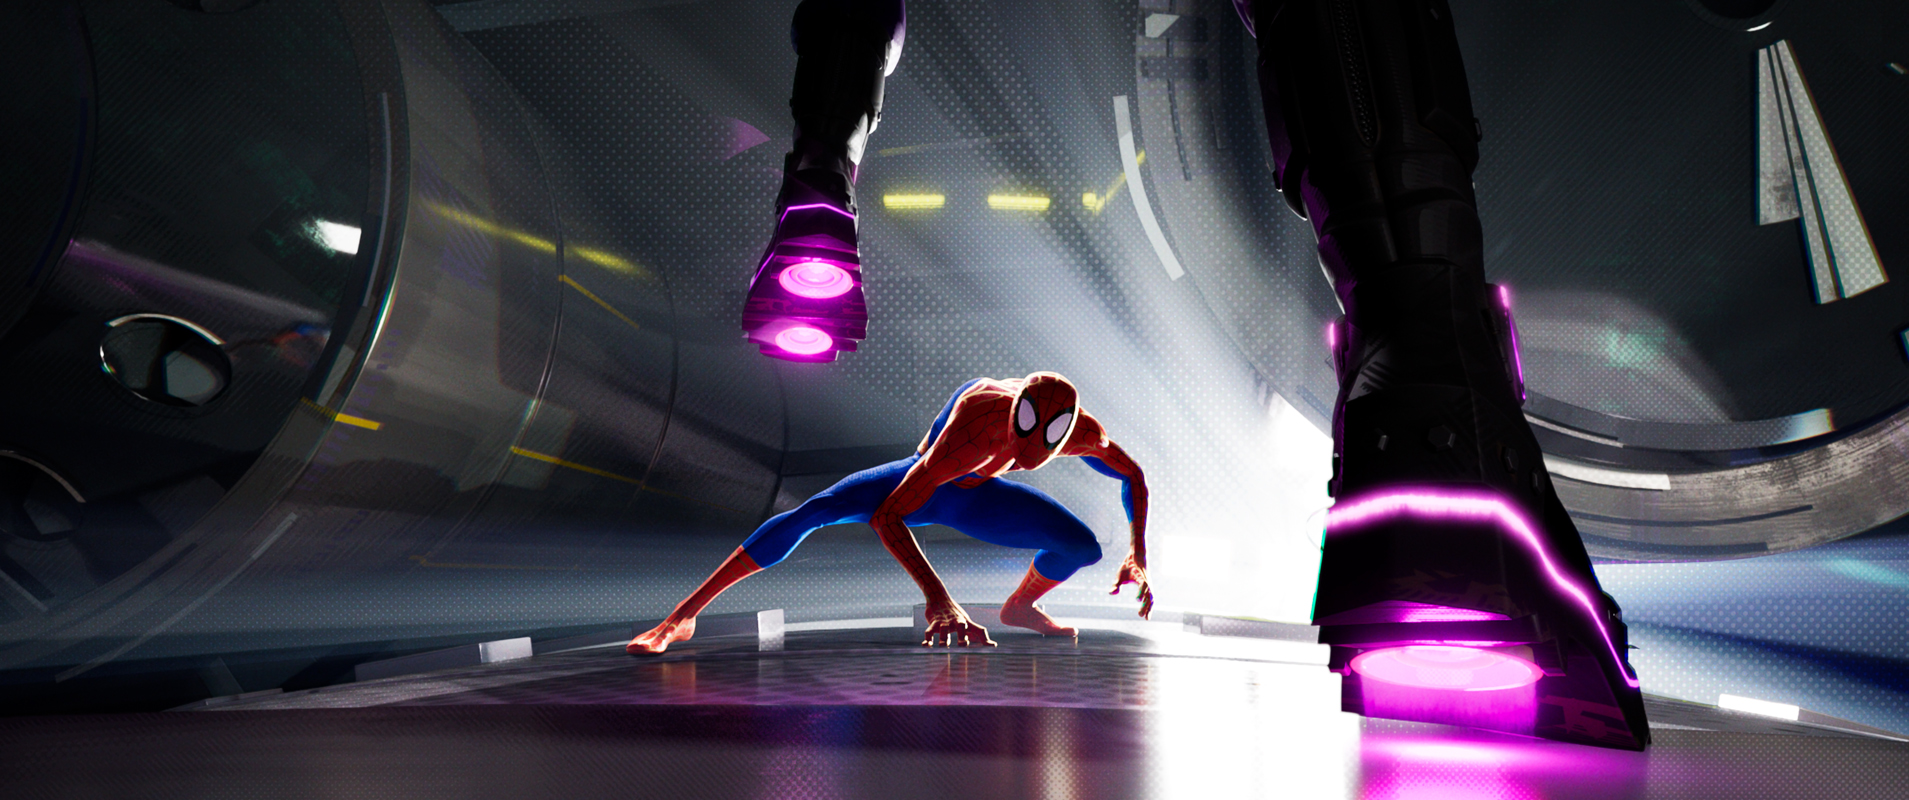 ART OF THE CUT on editing Spider-Man: Into the Spider-Verse 18